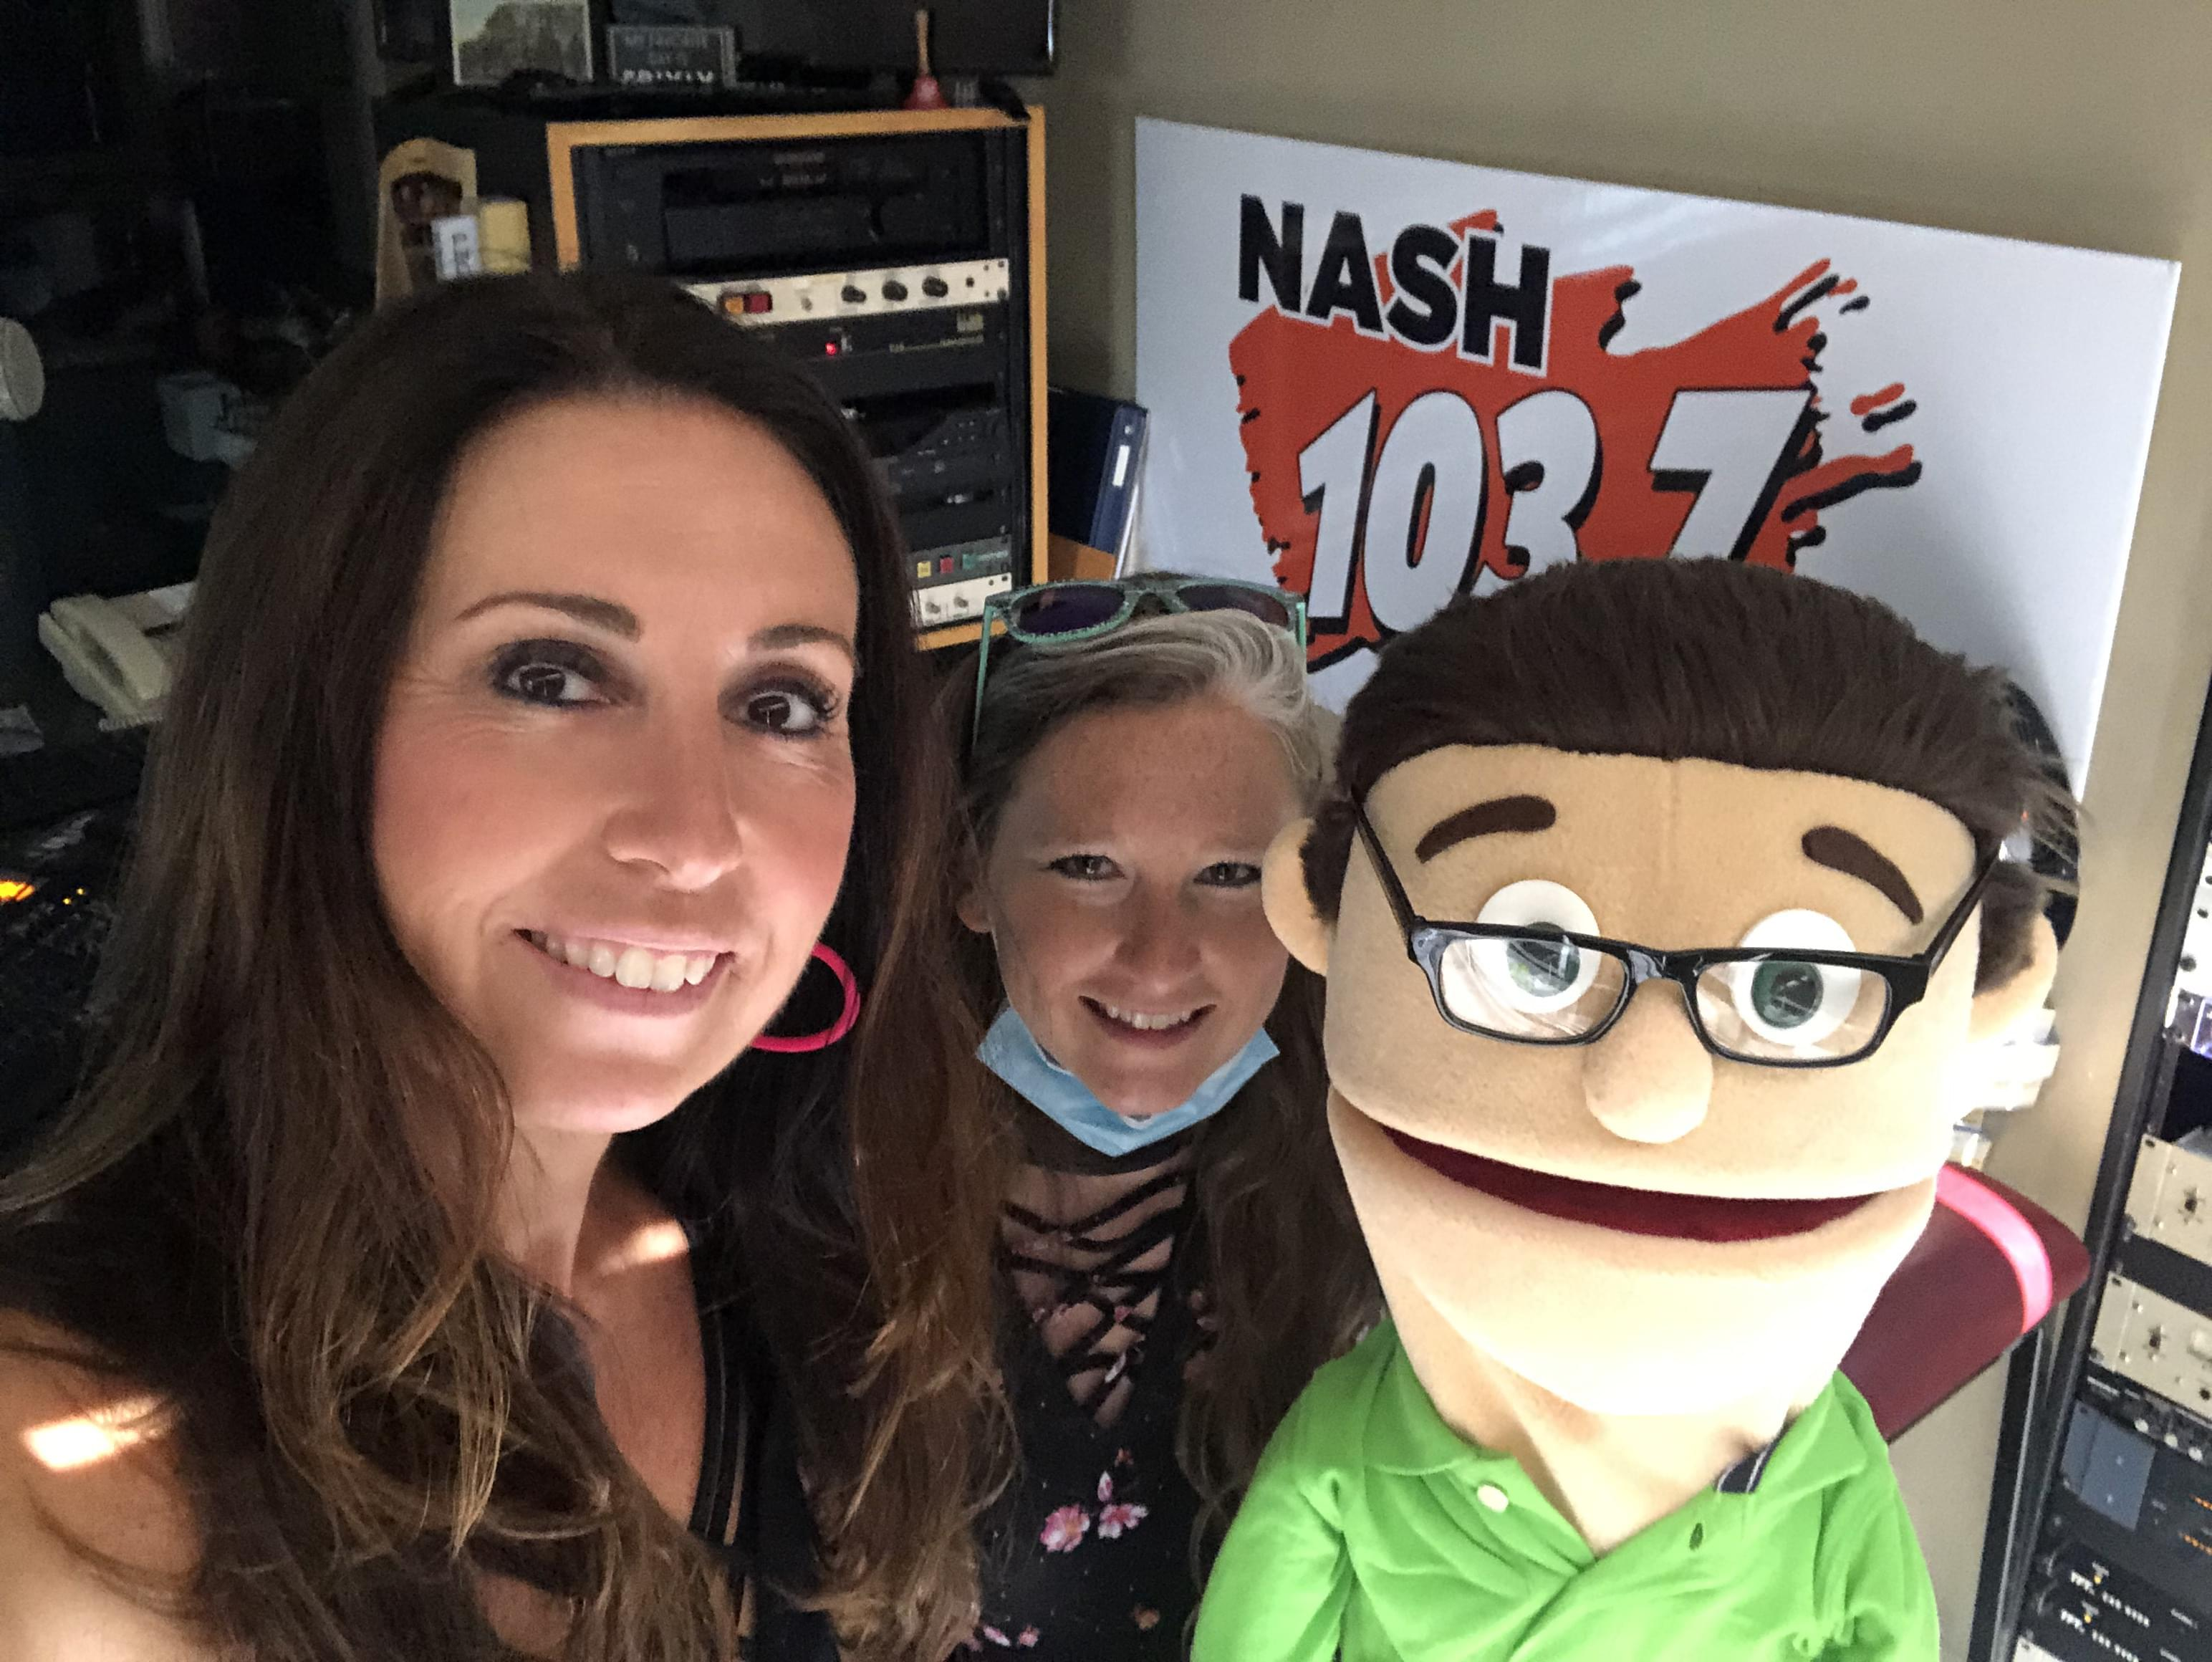 Find out about Dash for Sheldon presented by Kids on the Block and Workout Anytime